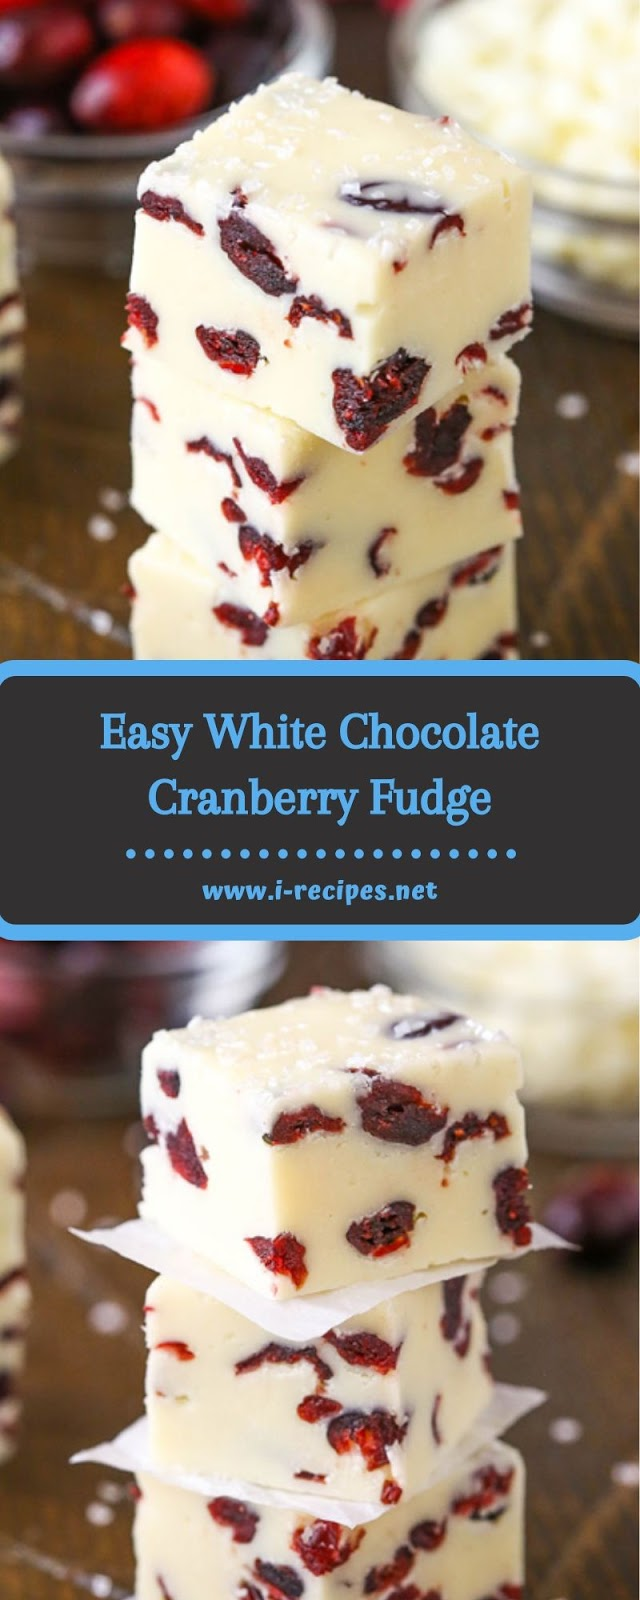 Easy White Chocolate Cranberry Fudge